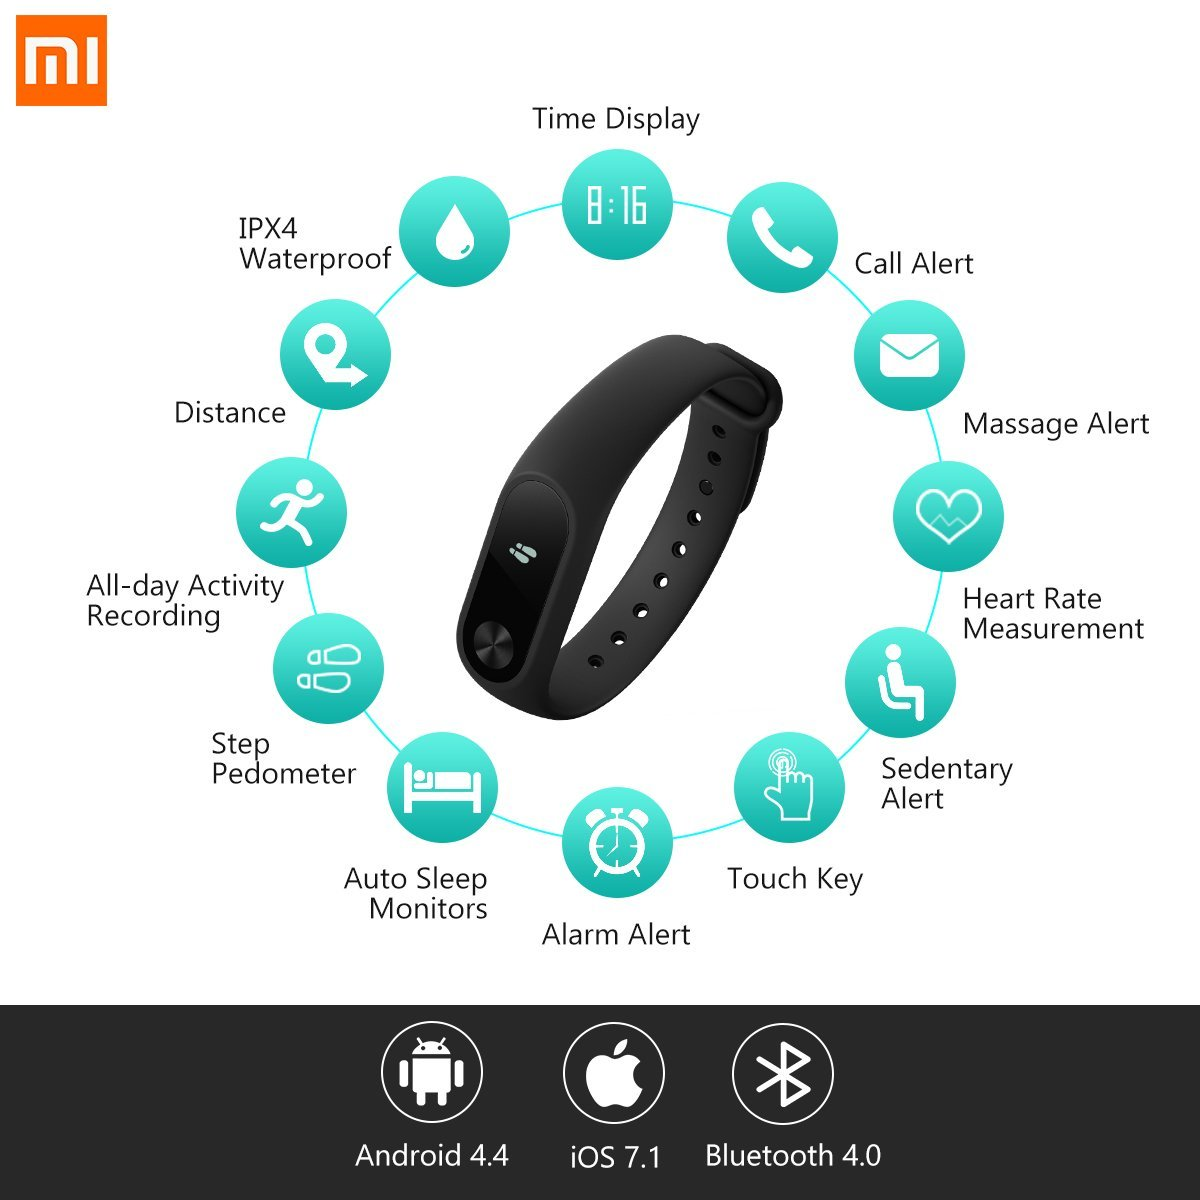 NEW LOW PRICE: Xiaomi Mi Band 2